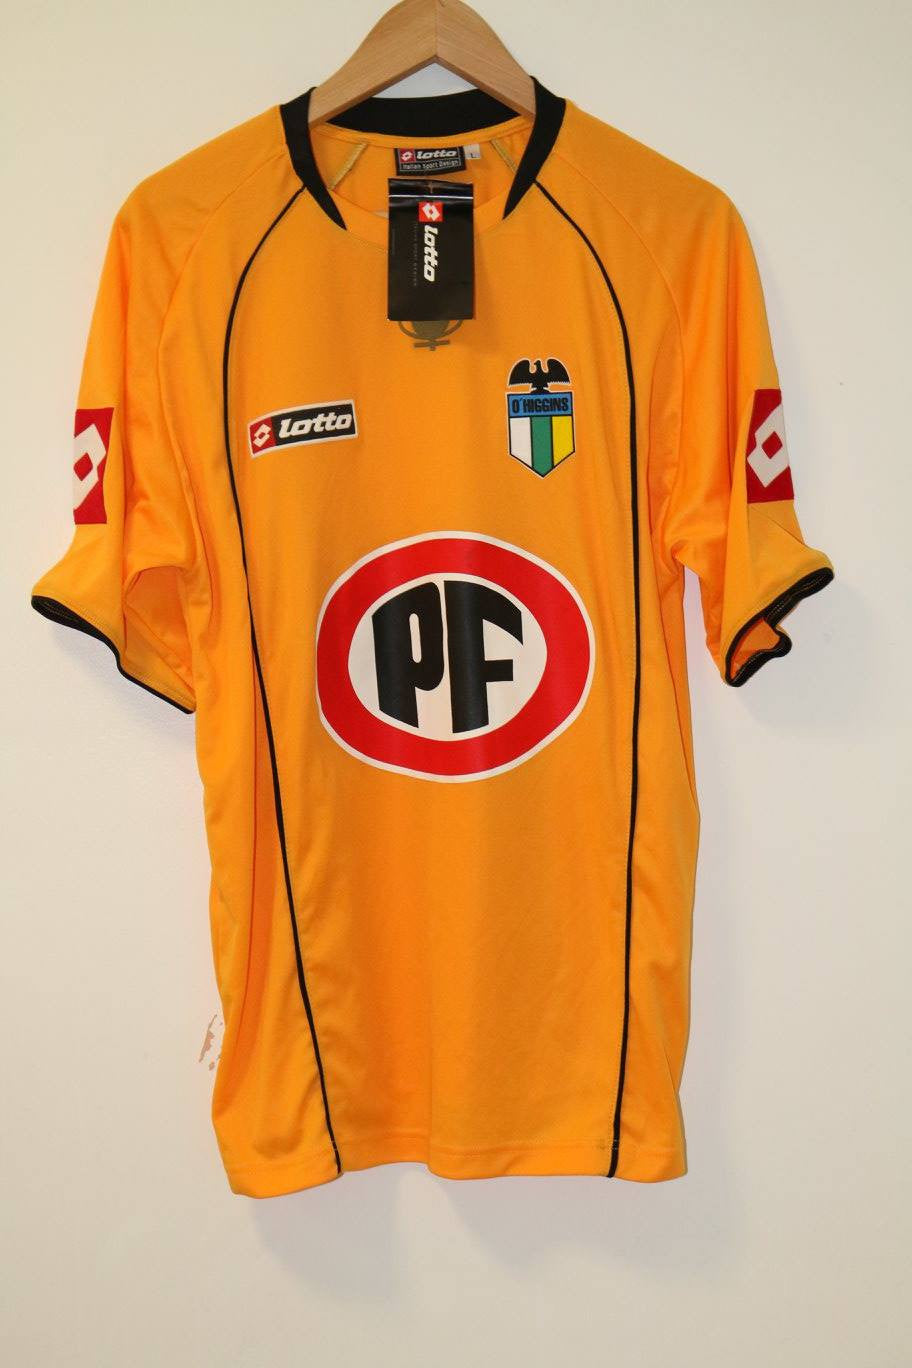 O'Higgins Lotto Away Shirt BNWT Large Chile